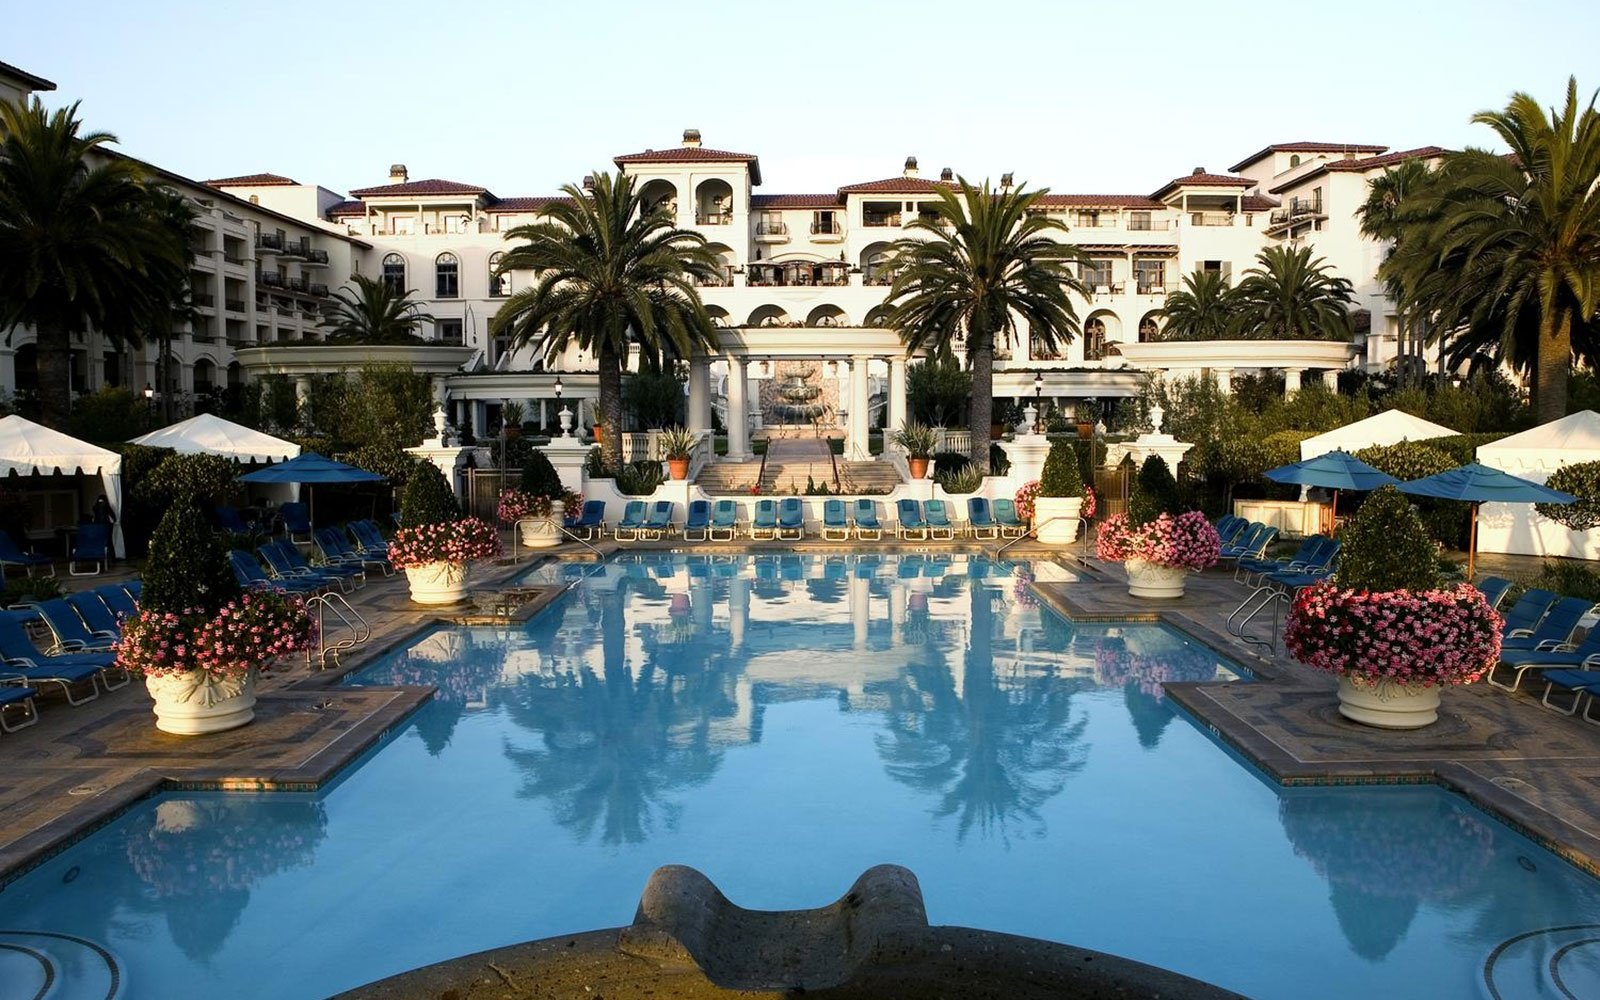 No. 22 St. Regis Monarch Beach, Dana Point, California